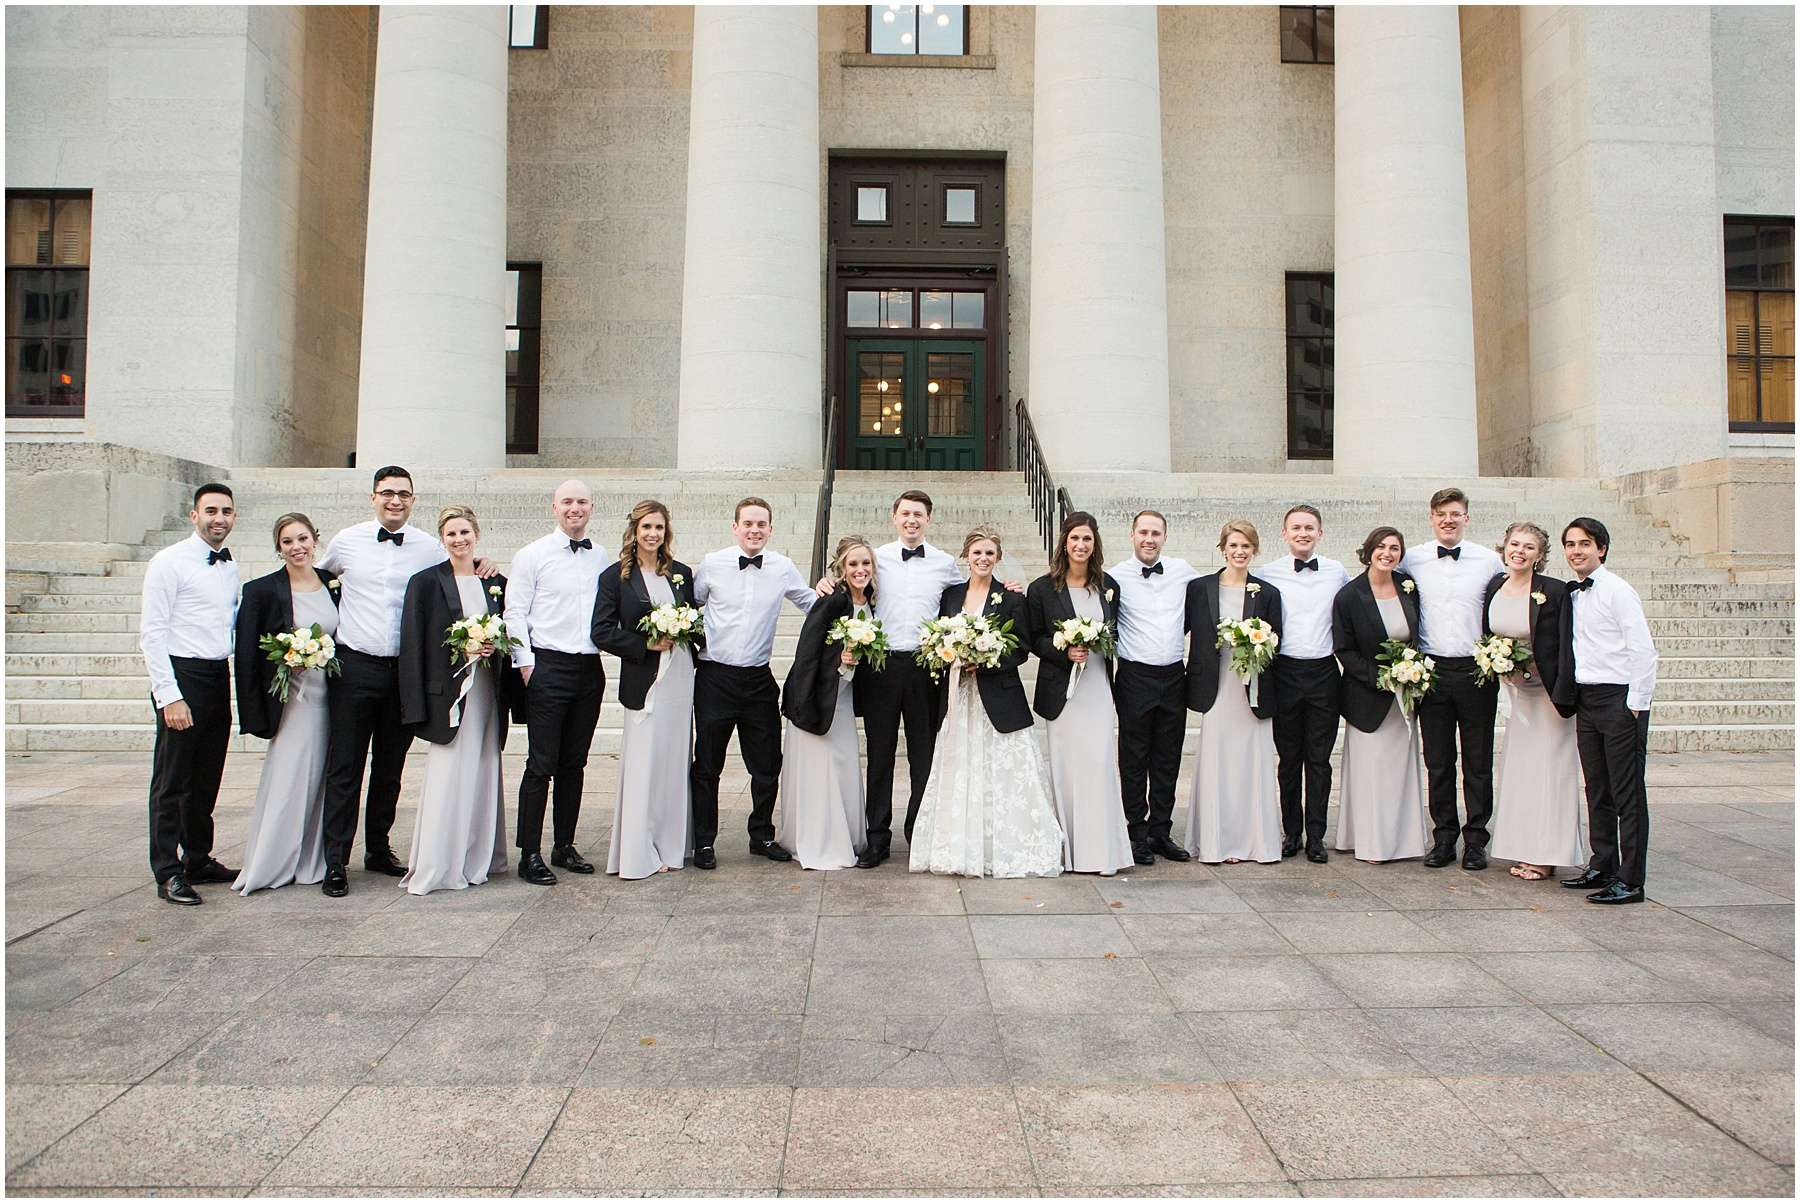 Wedding at the Ohio Statehouse | Columbus Ohio Weddings 174